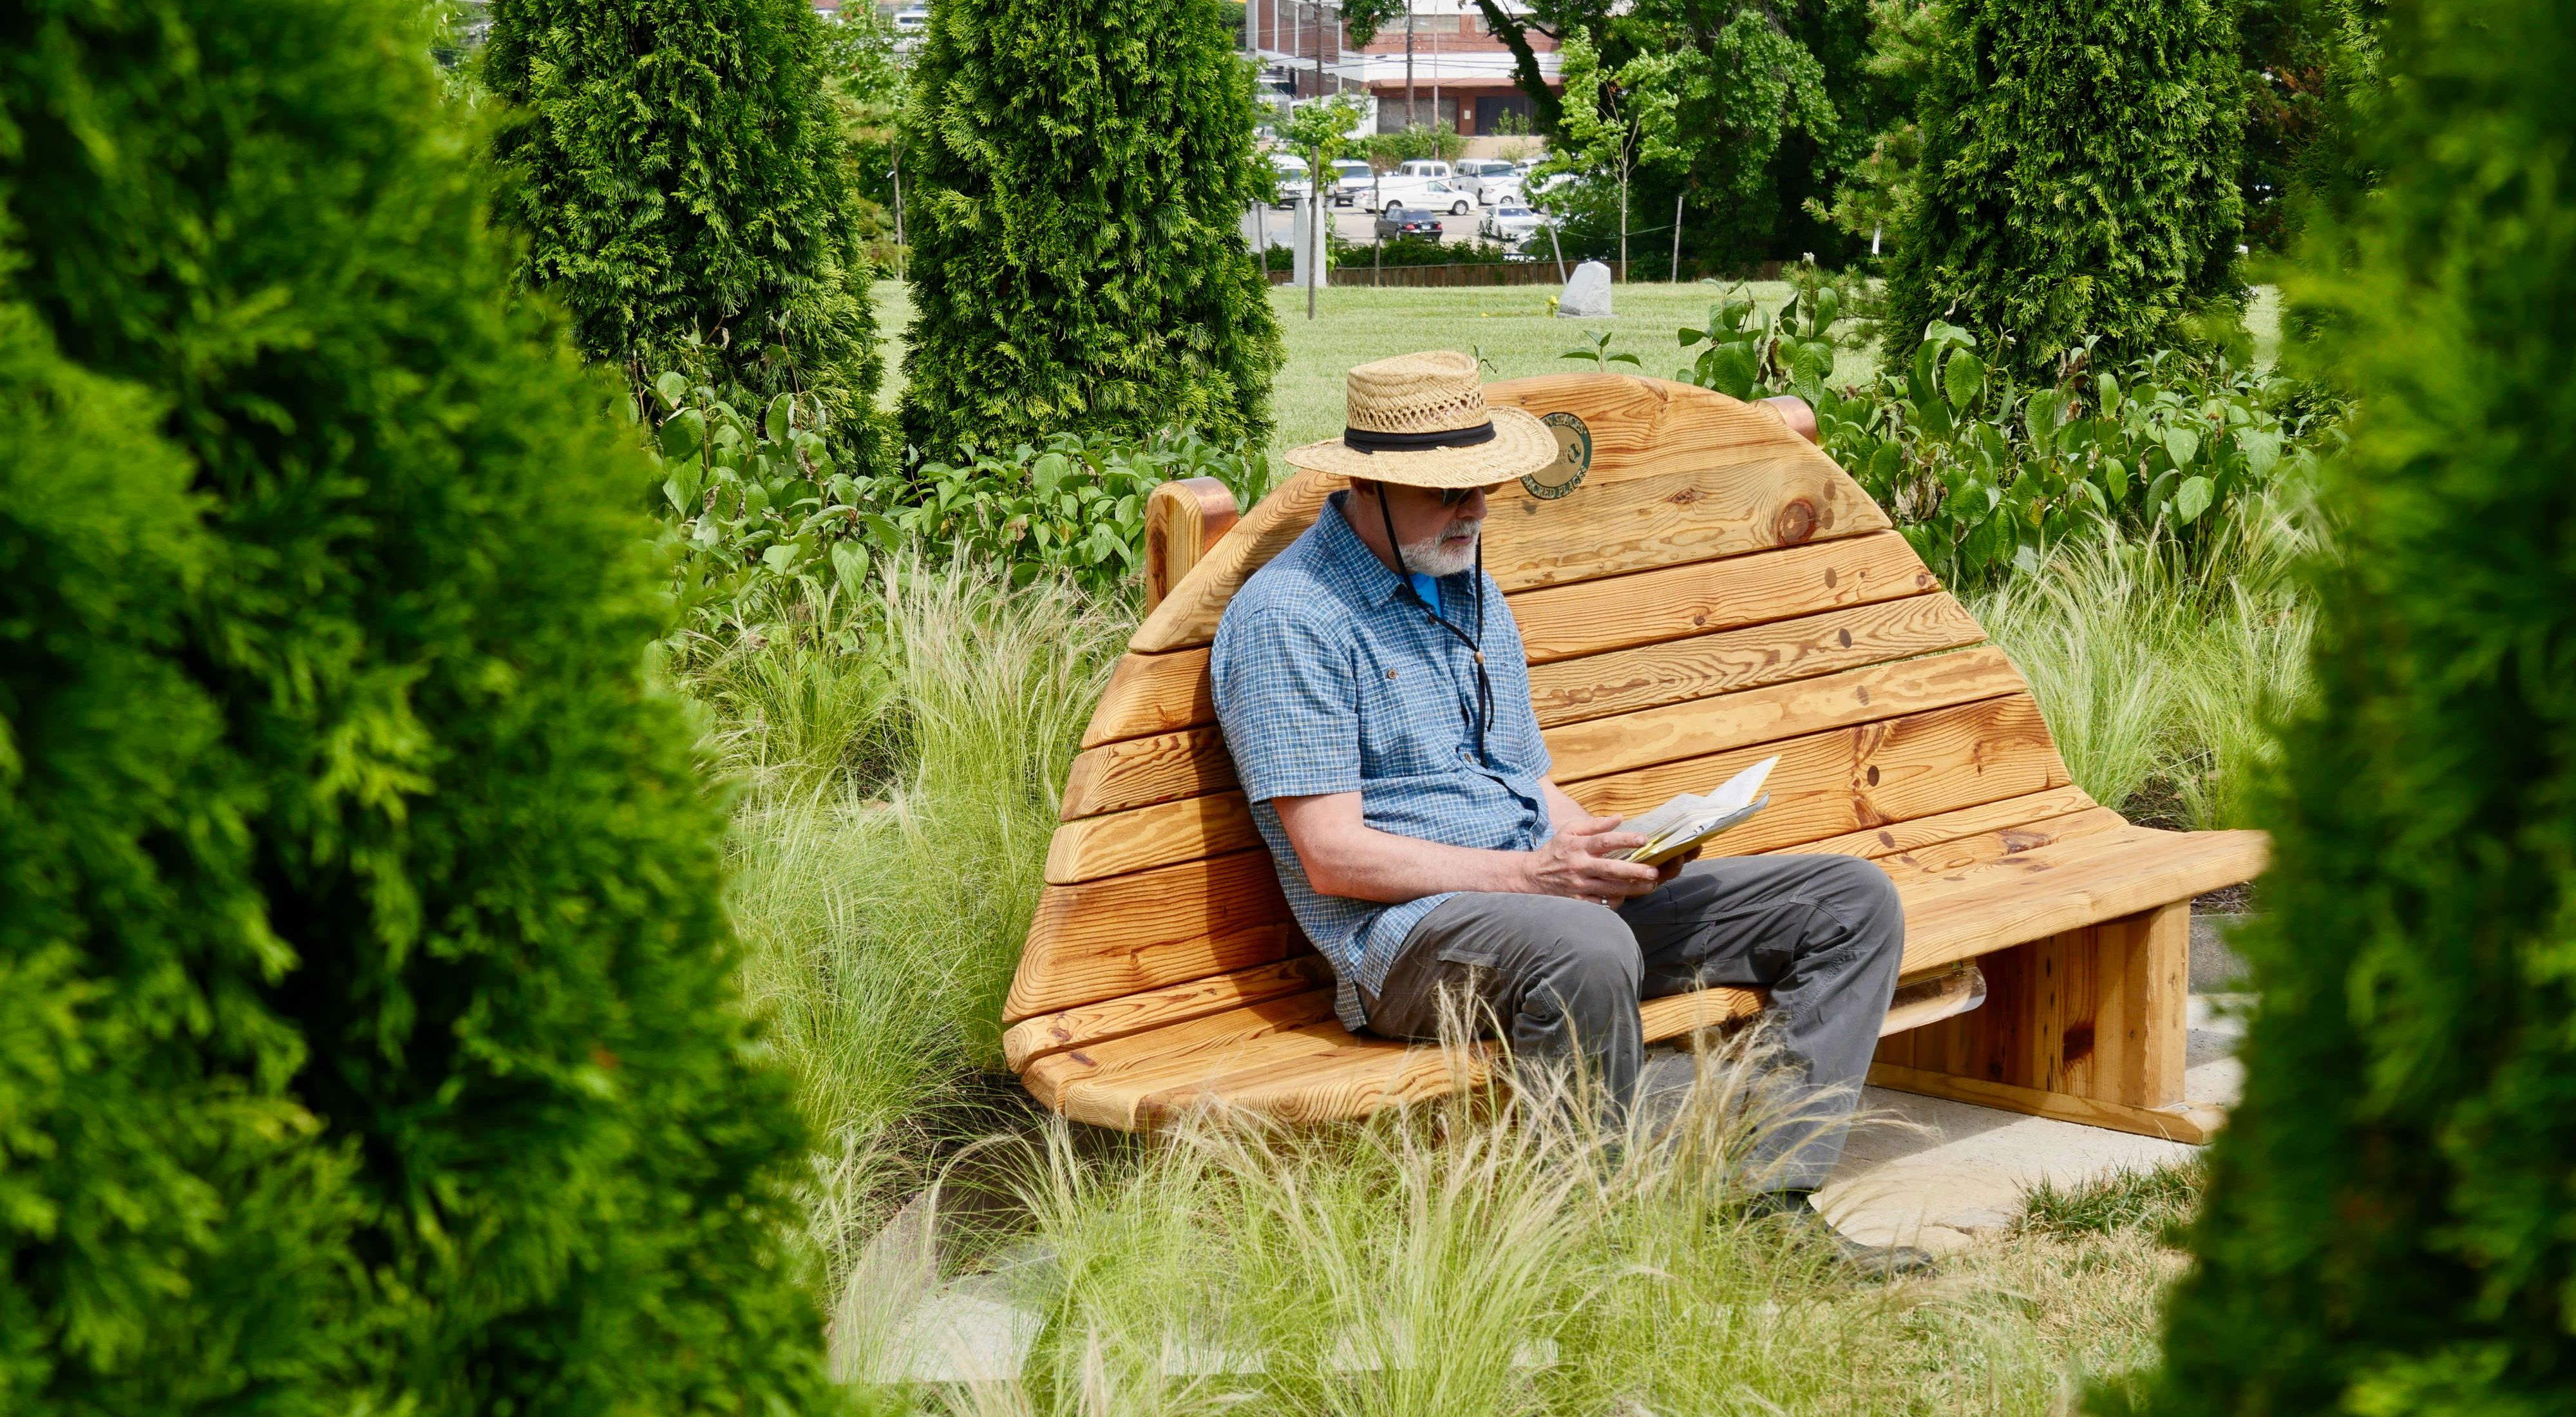 A man sits on a bench reading a book in an urban green space of newly plants trees and shrubs.